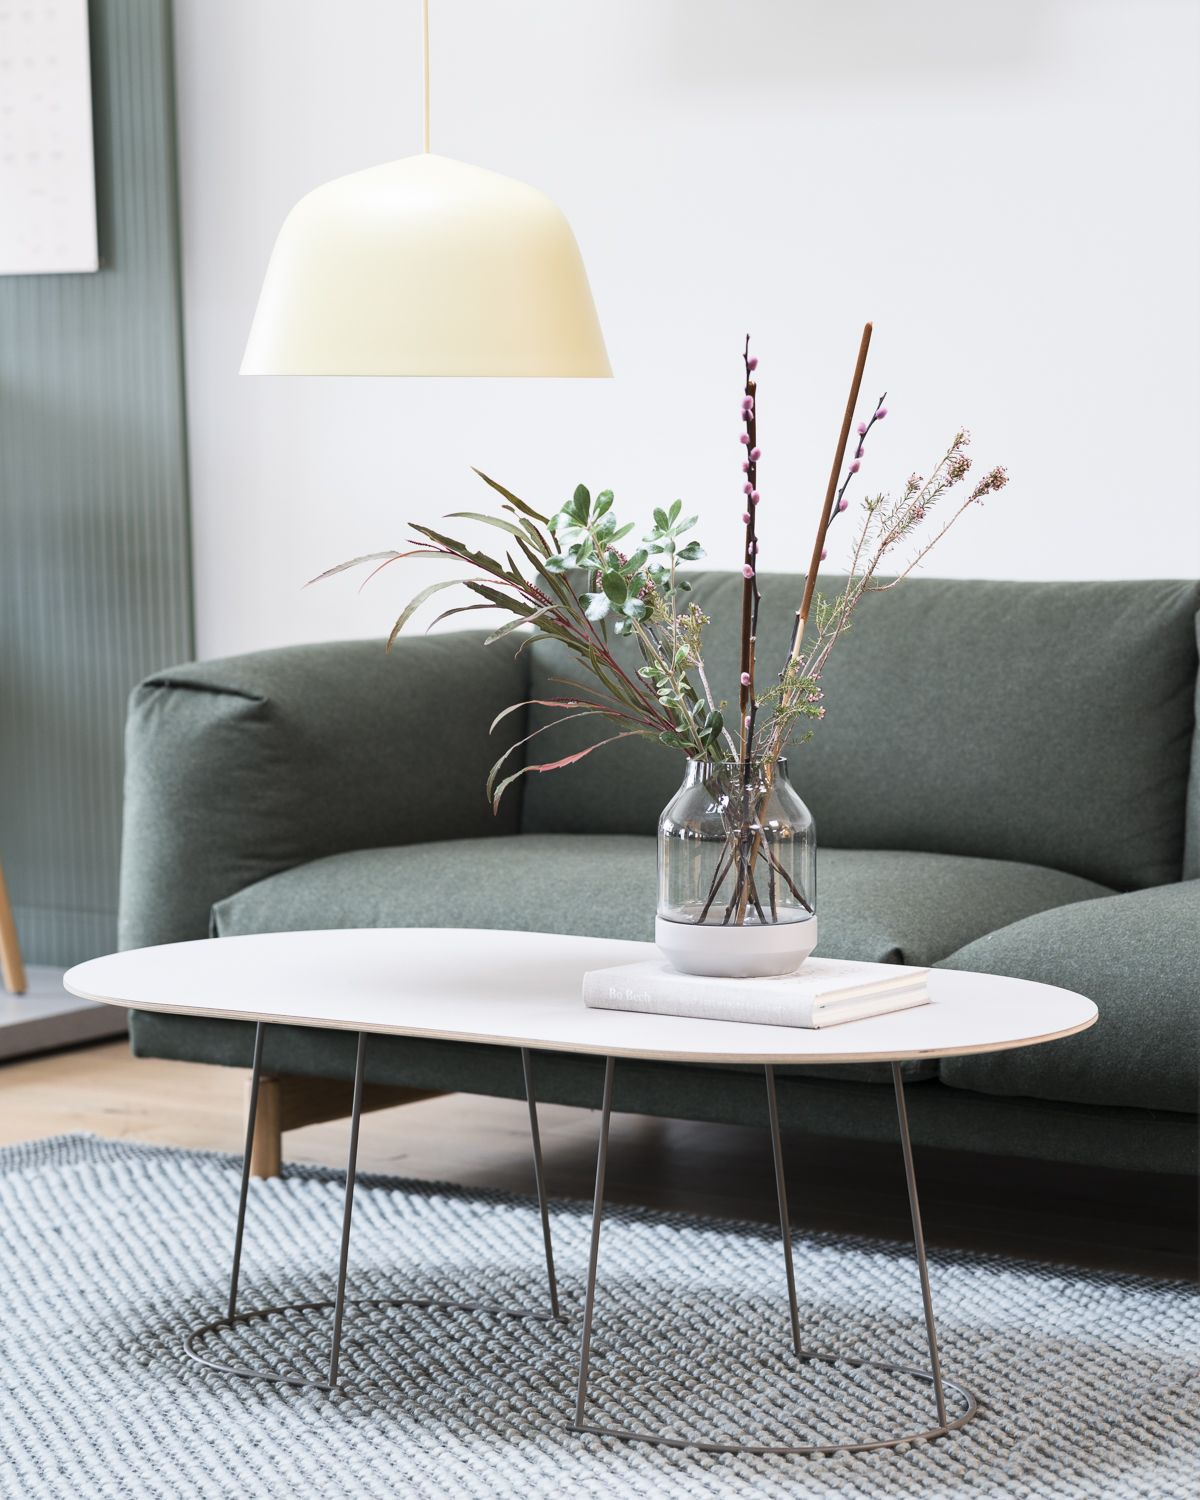 Scandinavian Lighting Inspiration From Muuto Embodying The Scandinavian Design V Scandinavian Furniture Design Living Room Furniture Sofas Minimalism Interior